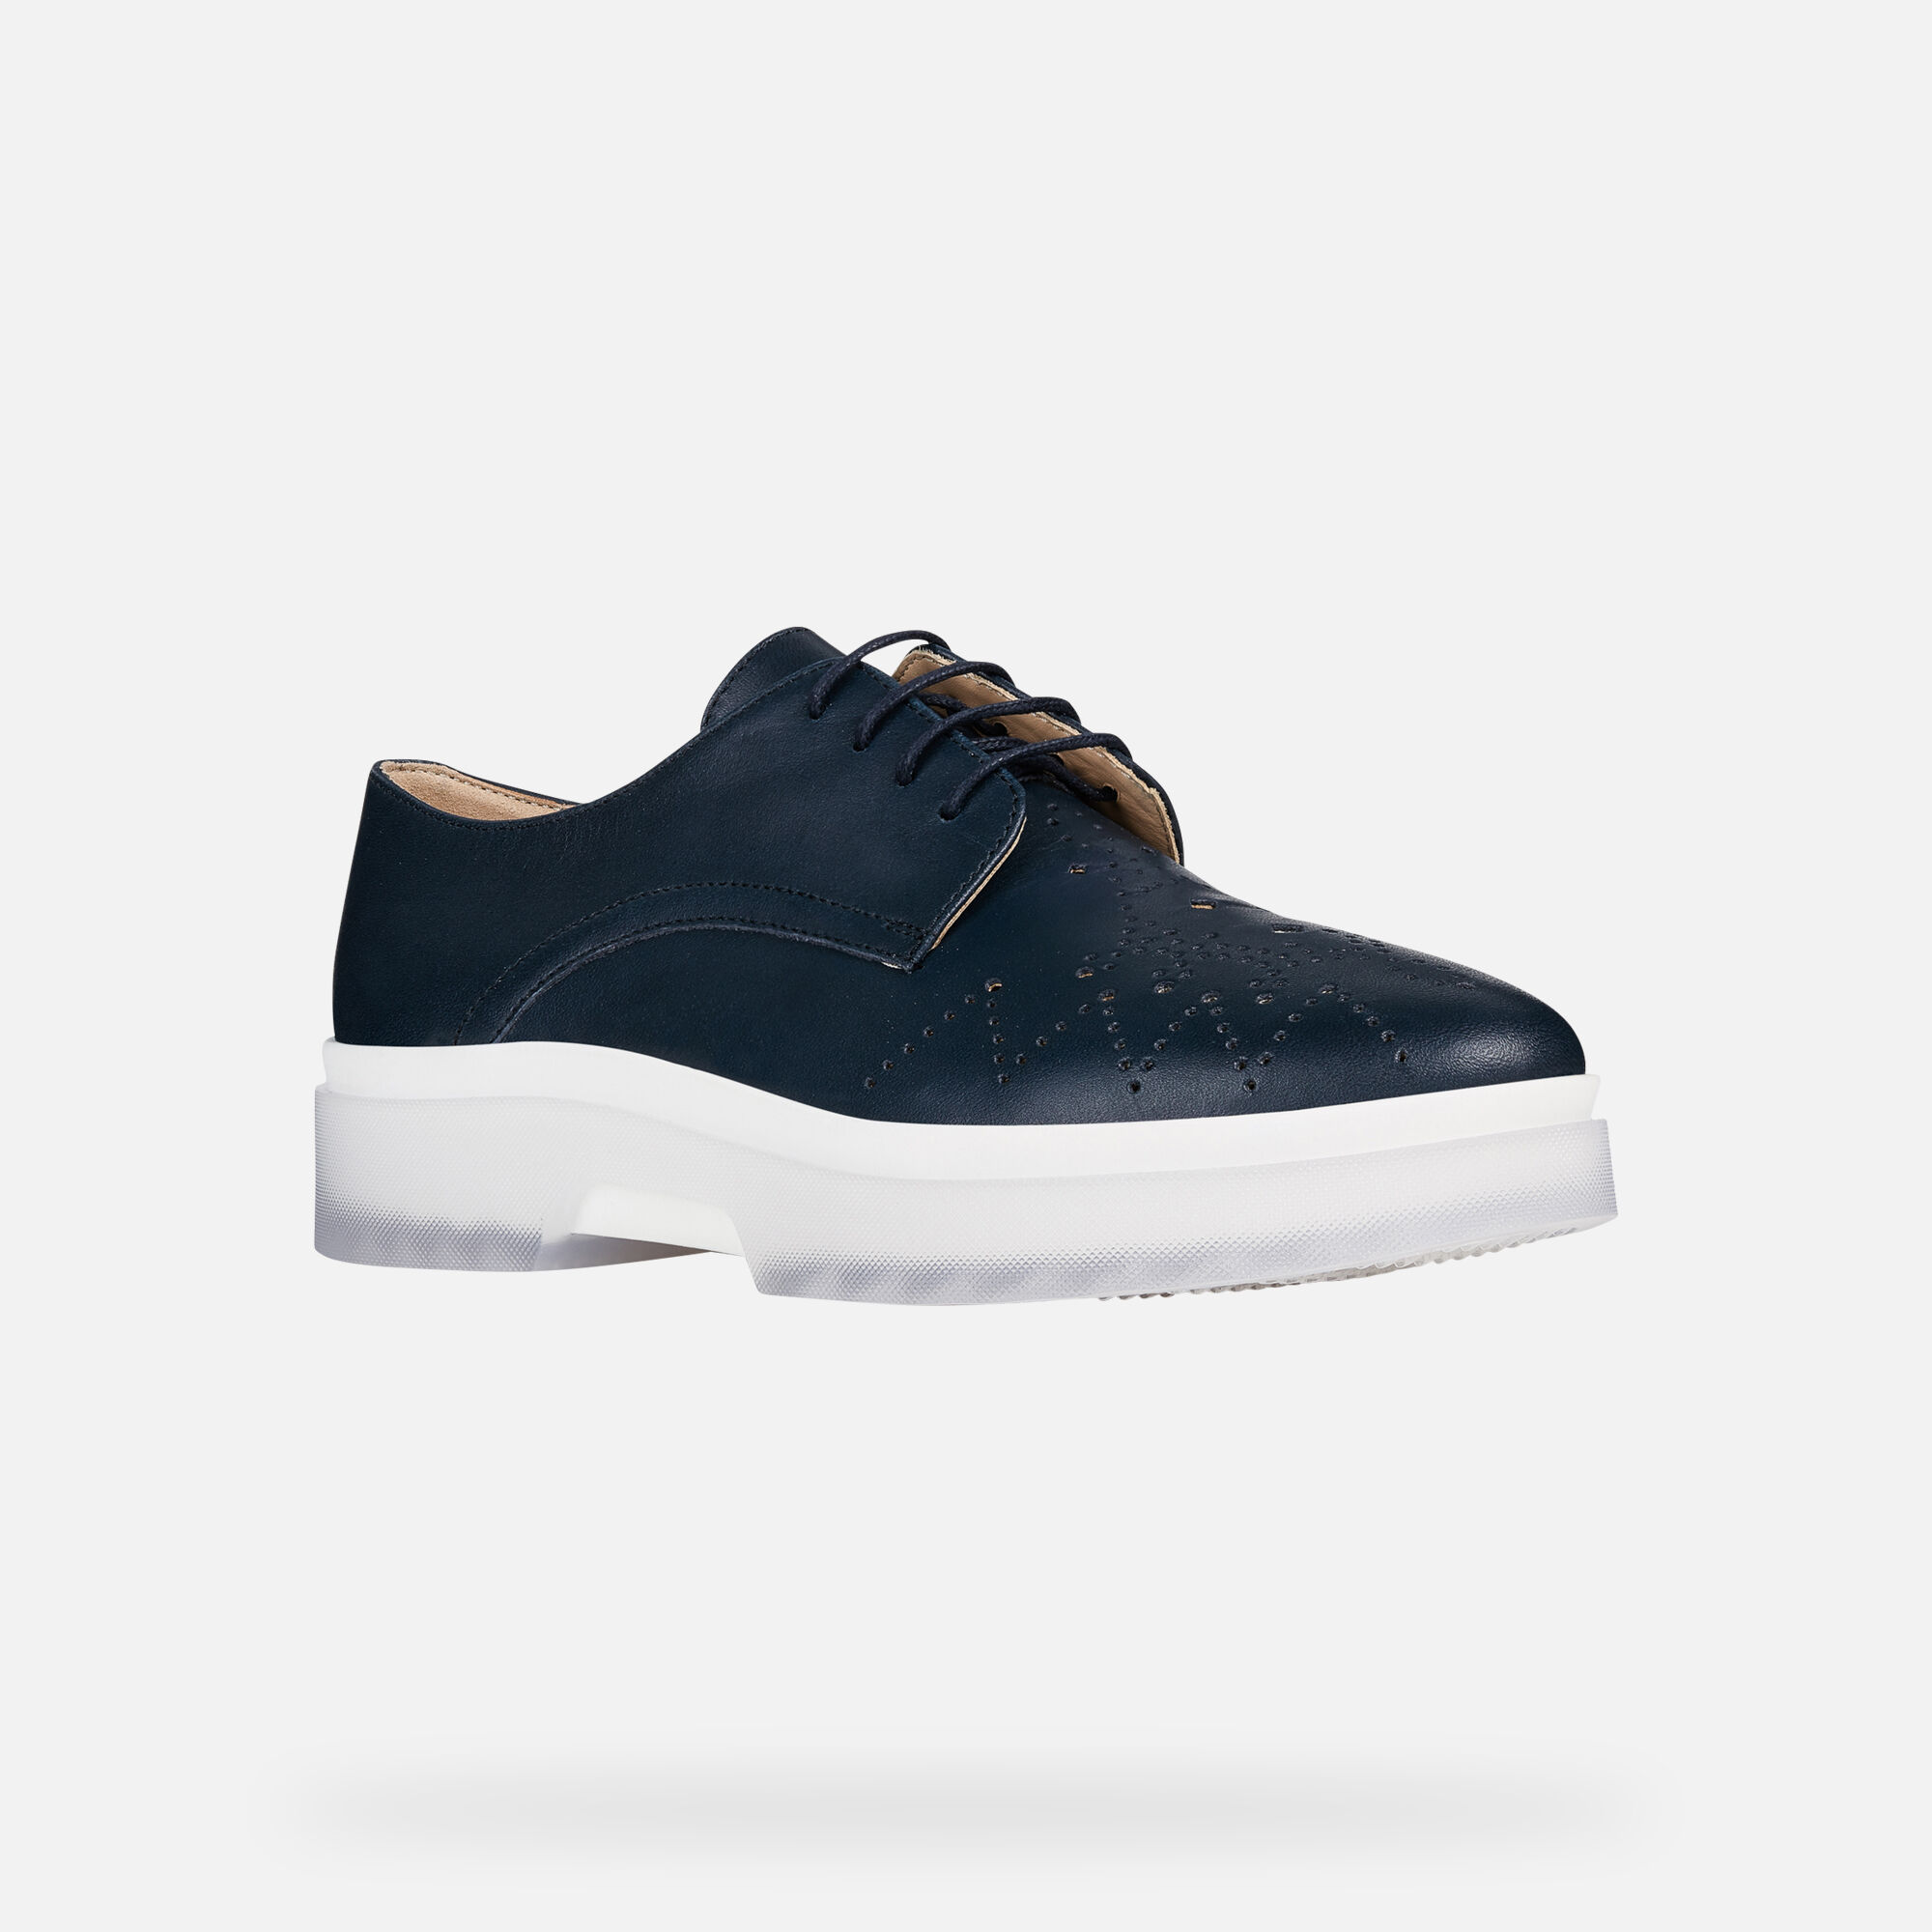 Geox D MYLUSE: Blue Navy Woman Shoes | Geox SS19